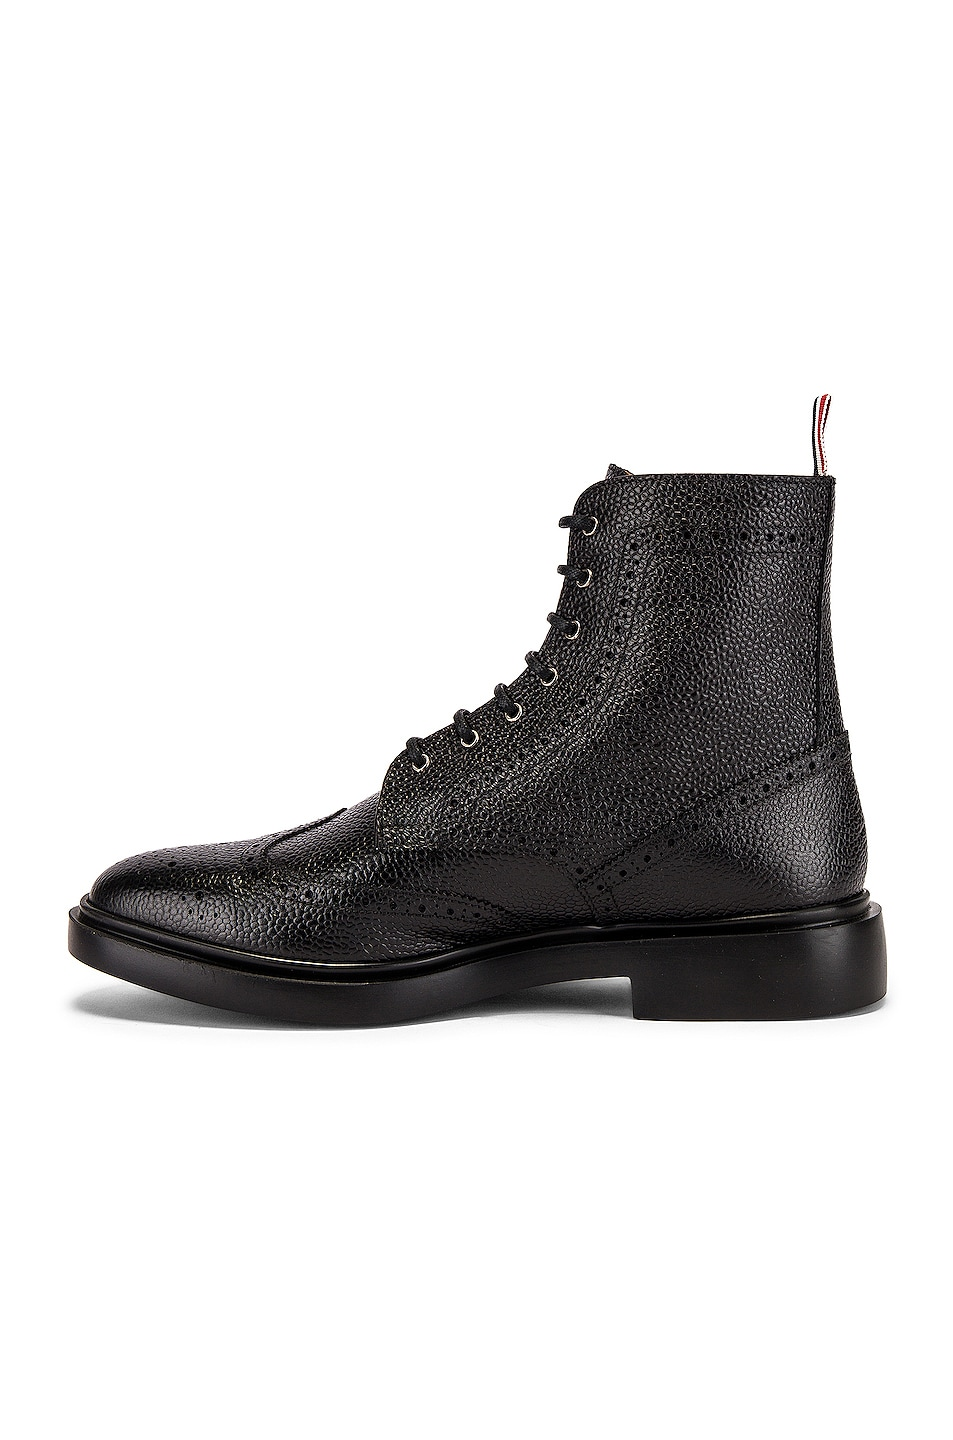 Image 5 of Thom Browne Classic Wingtip Boot in Black